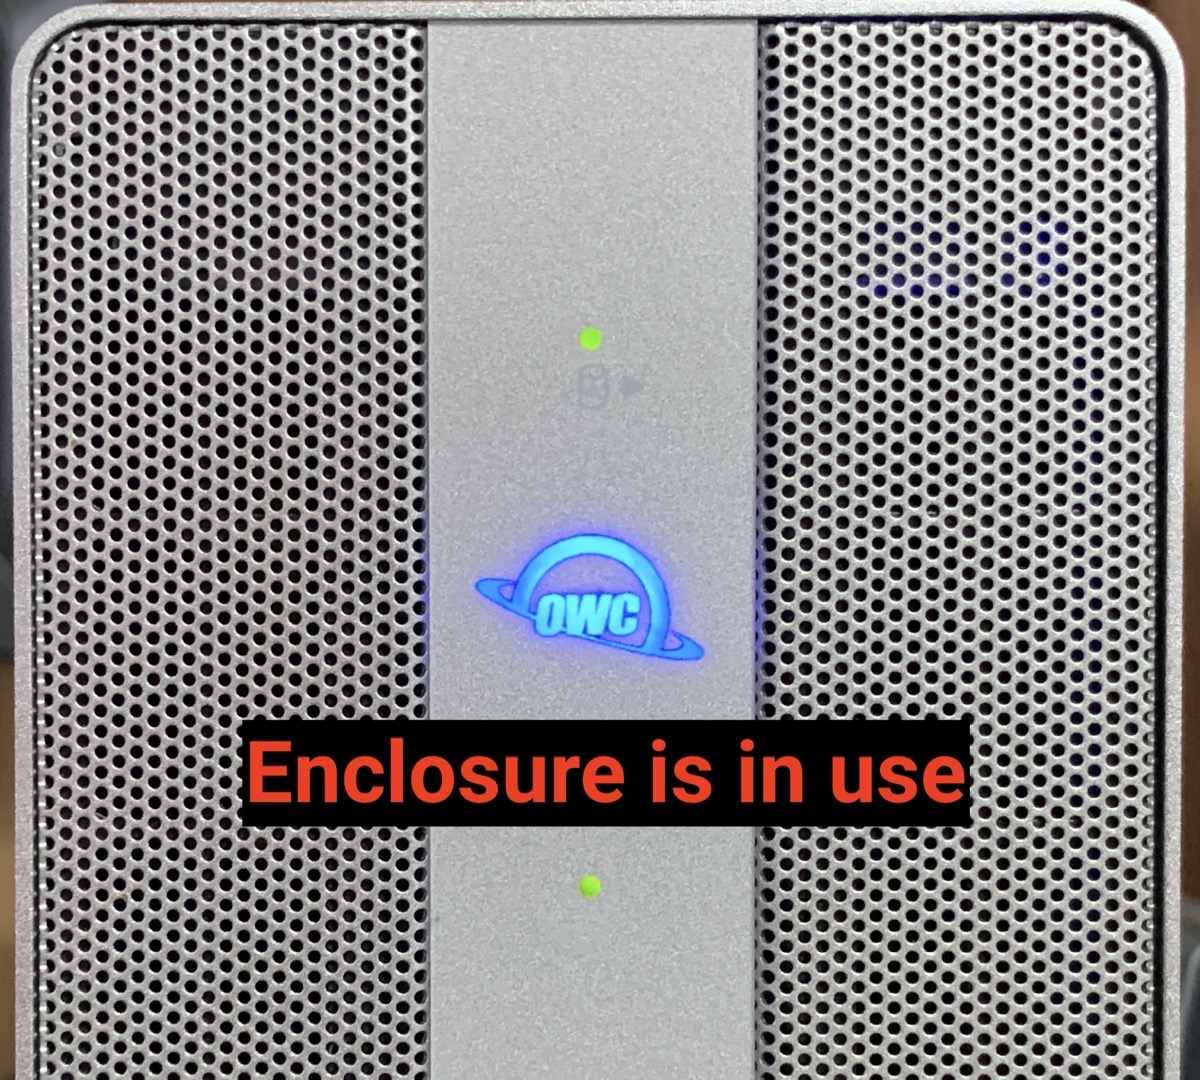 OWC logo in blue Indicating enclosure is in use